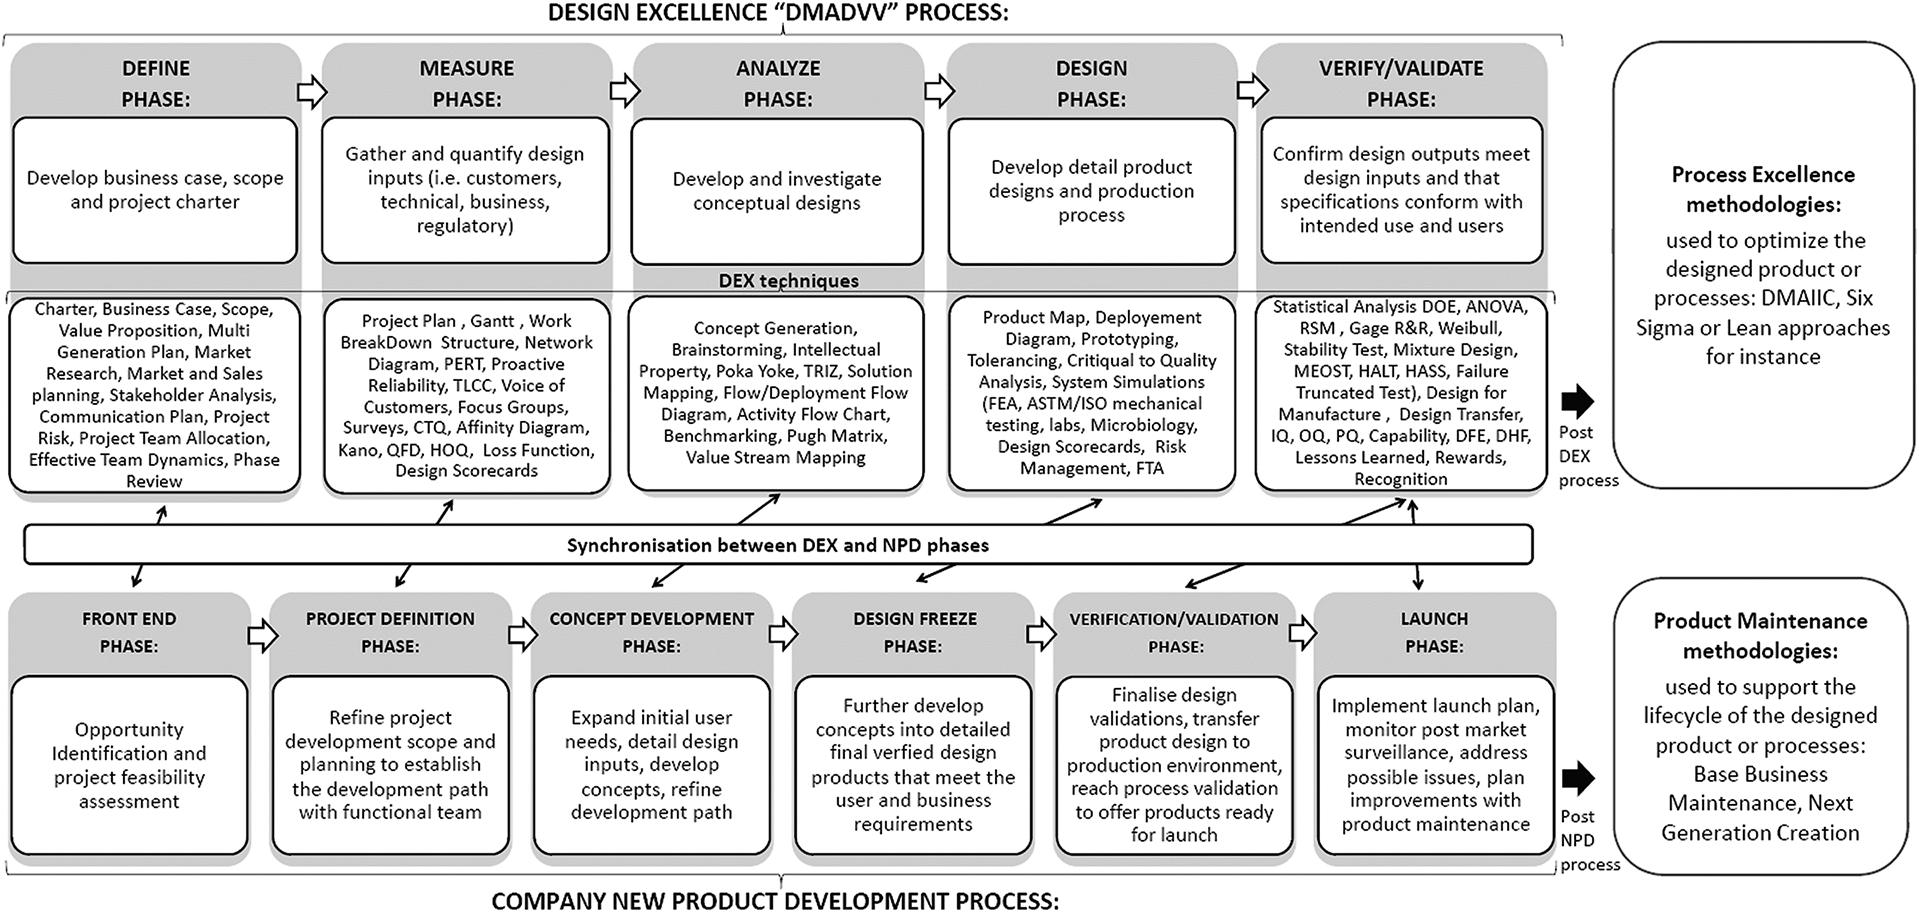 Nice Framework For New Product Design From Managing Design Excellence Tools During The Development Of New Orthopaedic Implants Development Innovation Design